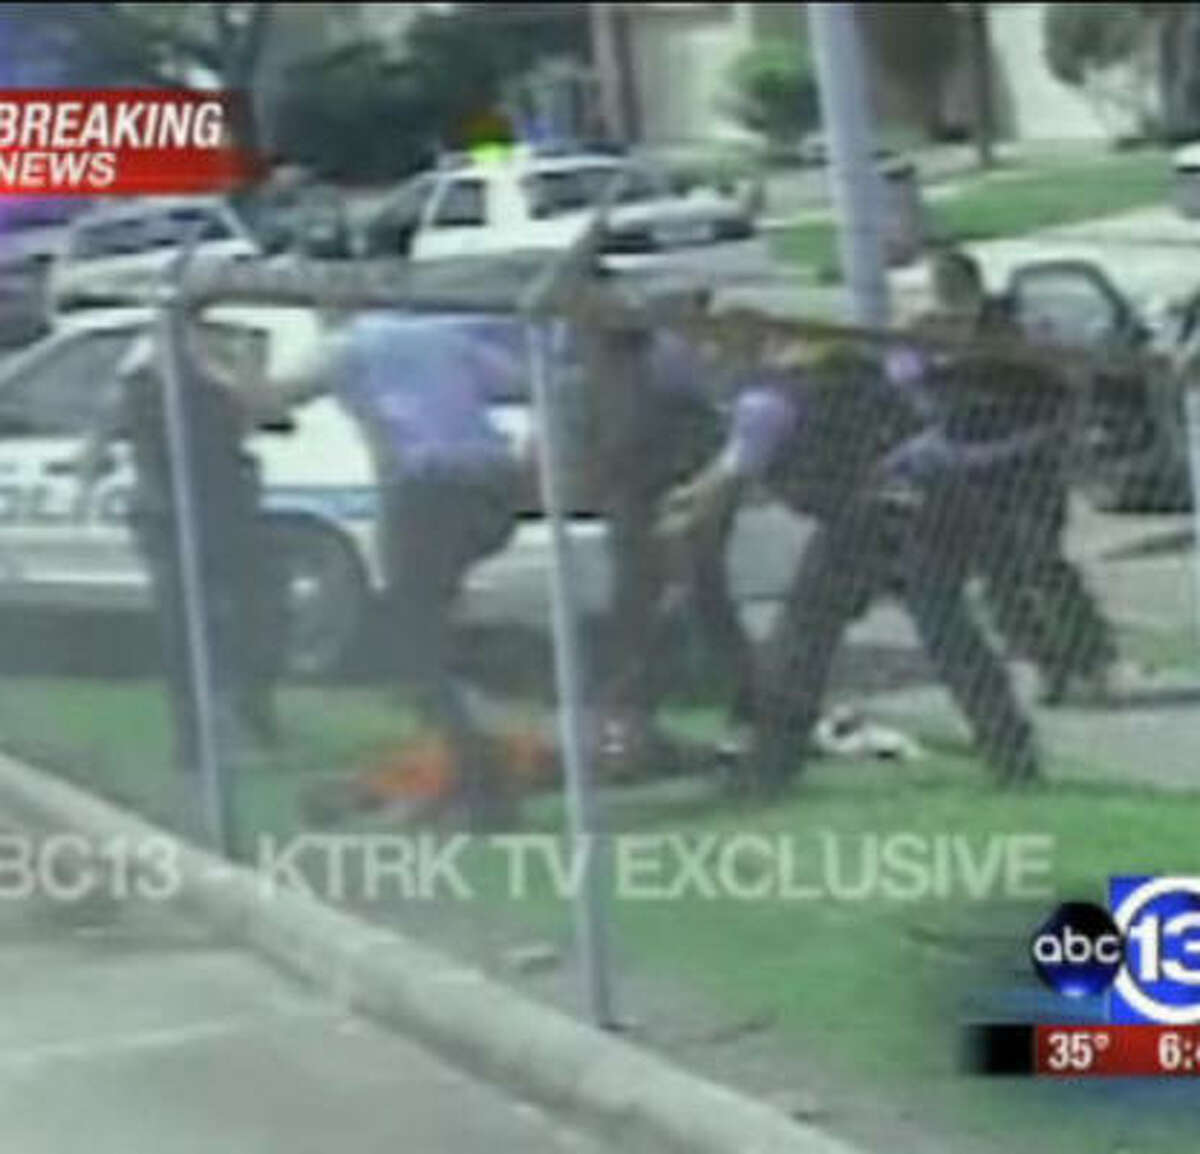 A frame from a video obtained by KTRK allegedly shows Chad Holley, 15, being beaten by HPD officers. Seven officers were fired over the beating.